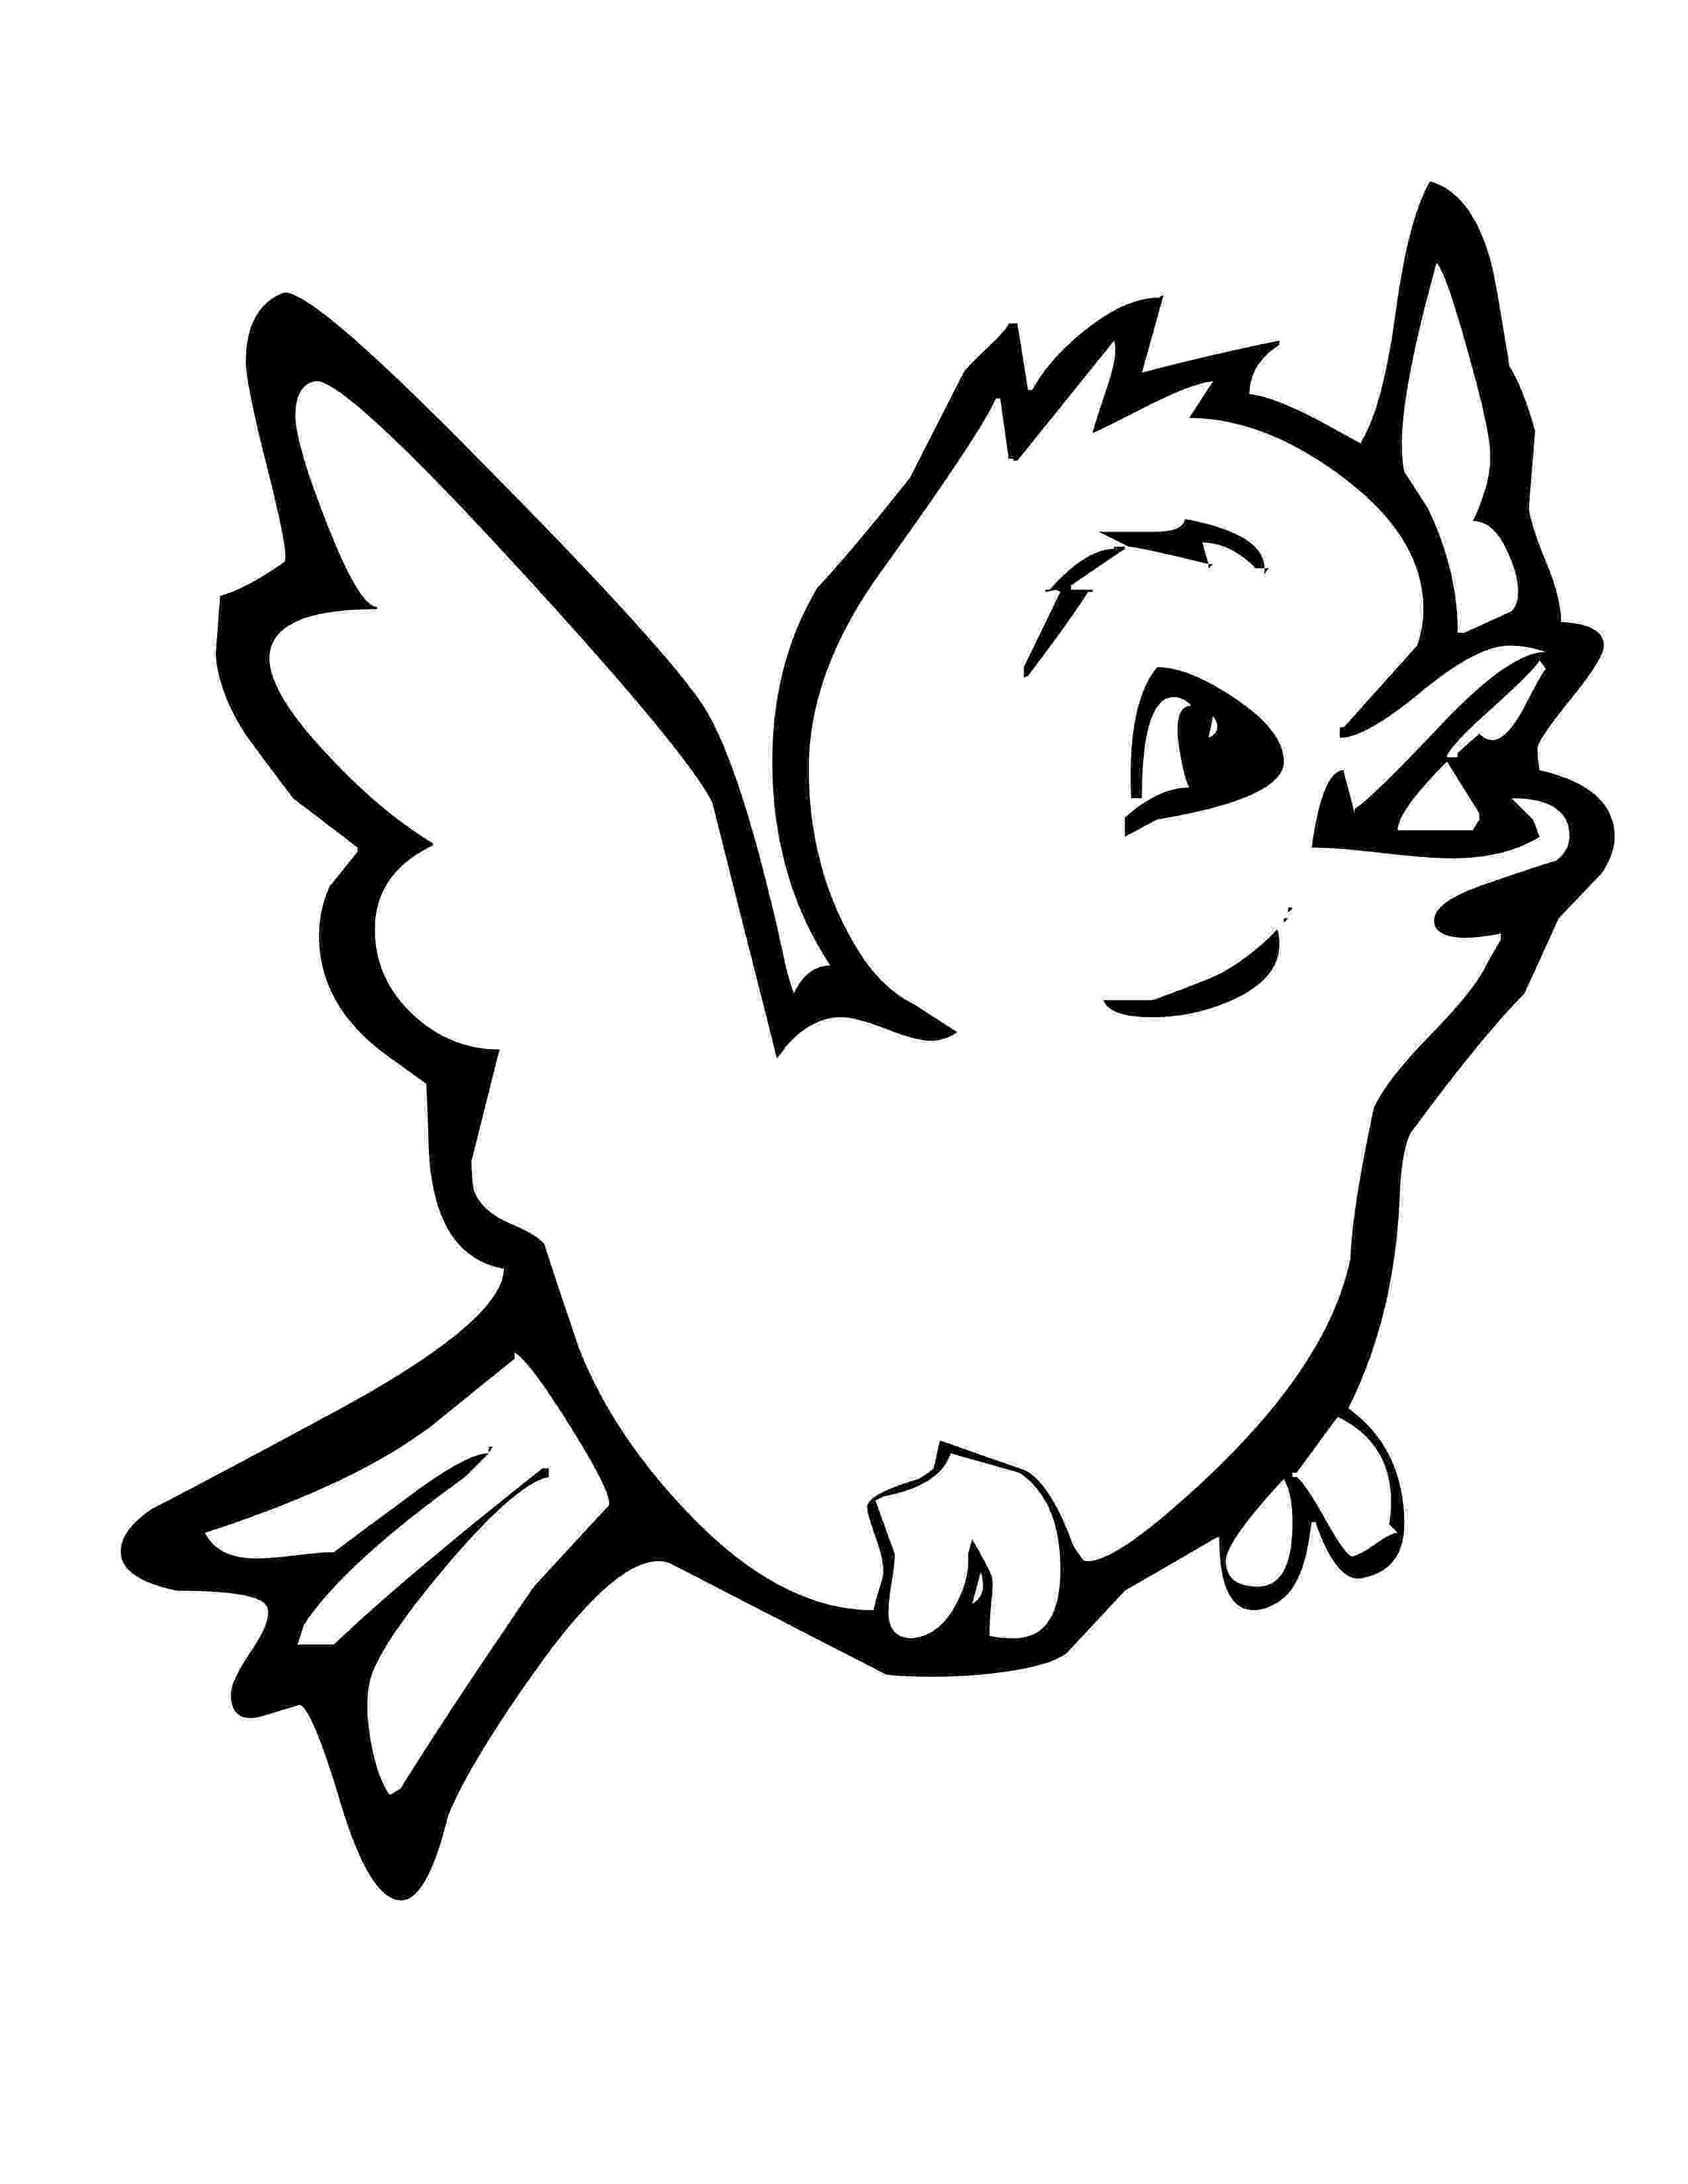 pigeon coloring sheet quotdon39t let the pigeon drive the busquot coloring sheet bus coloring pigeon sheet